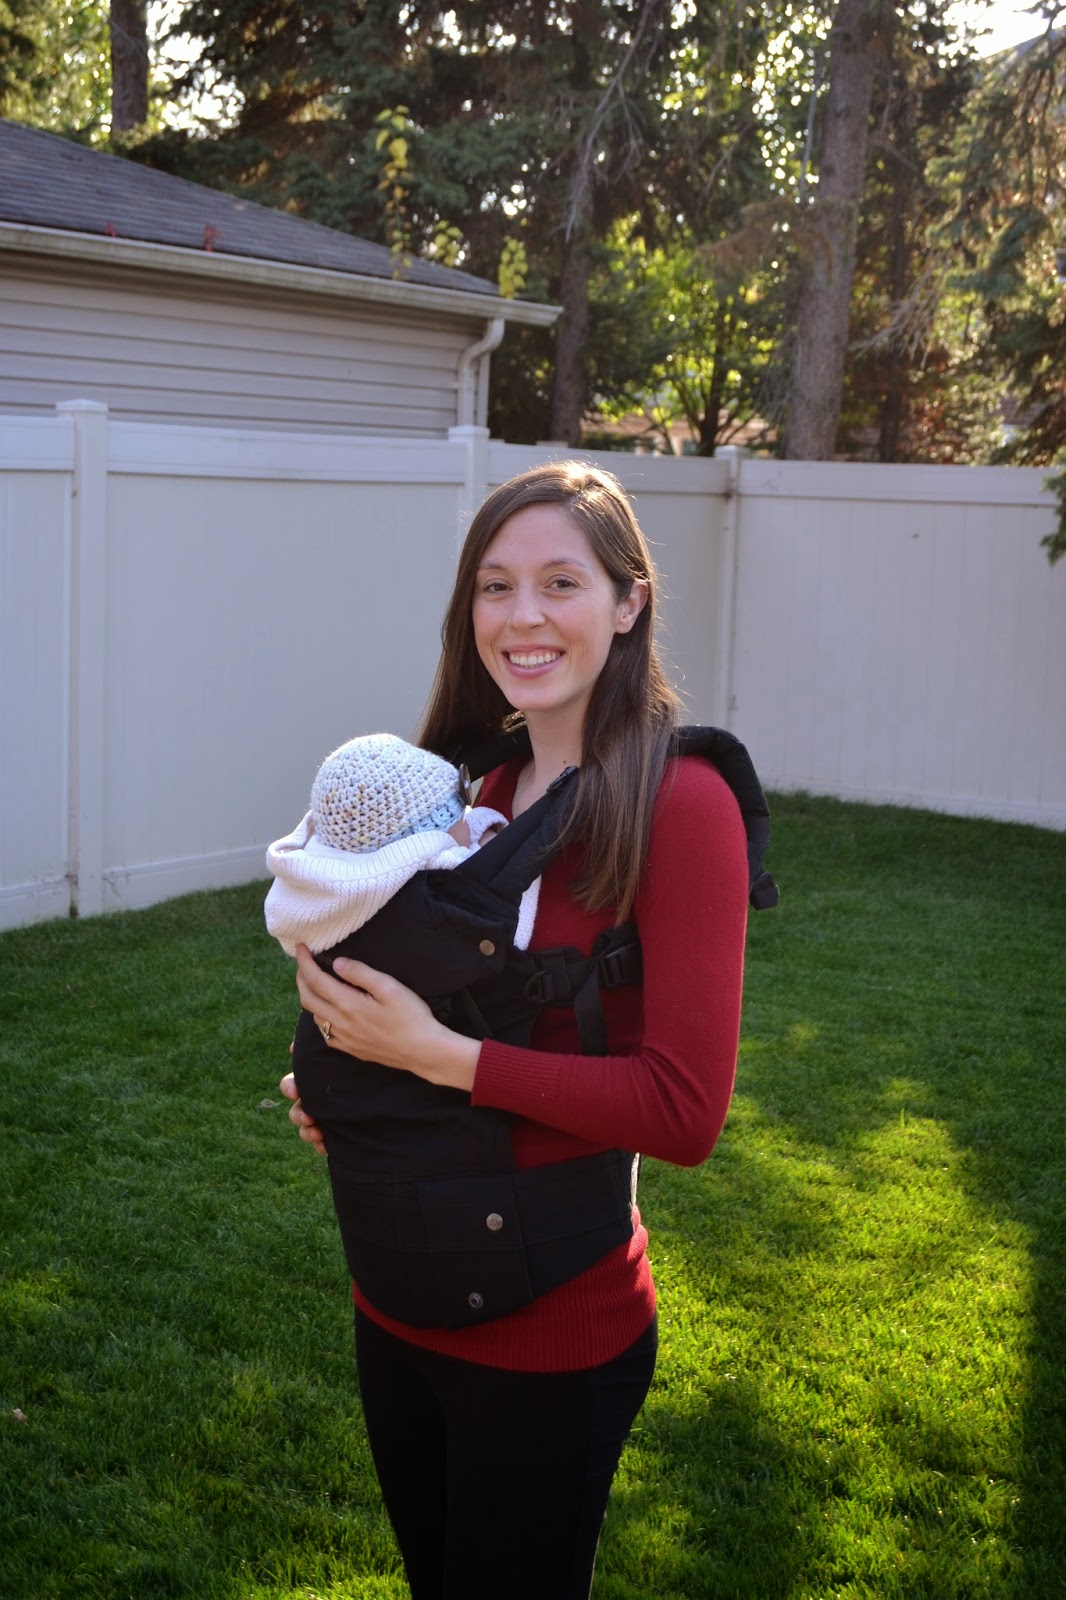 Lillebaby Complete Original baby carrier